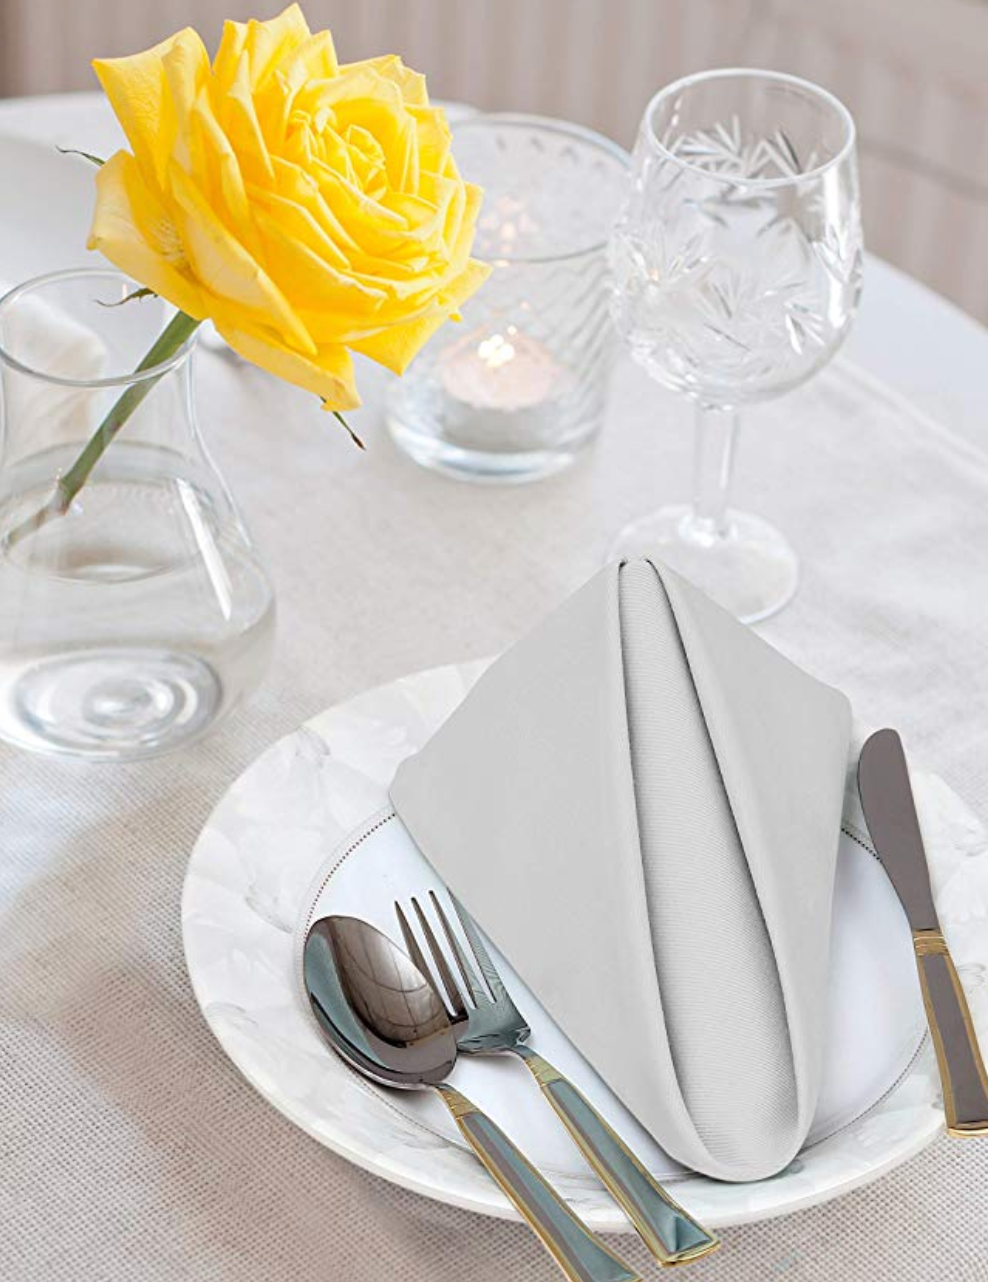 Place setting at a table with a nicely folded napkin